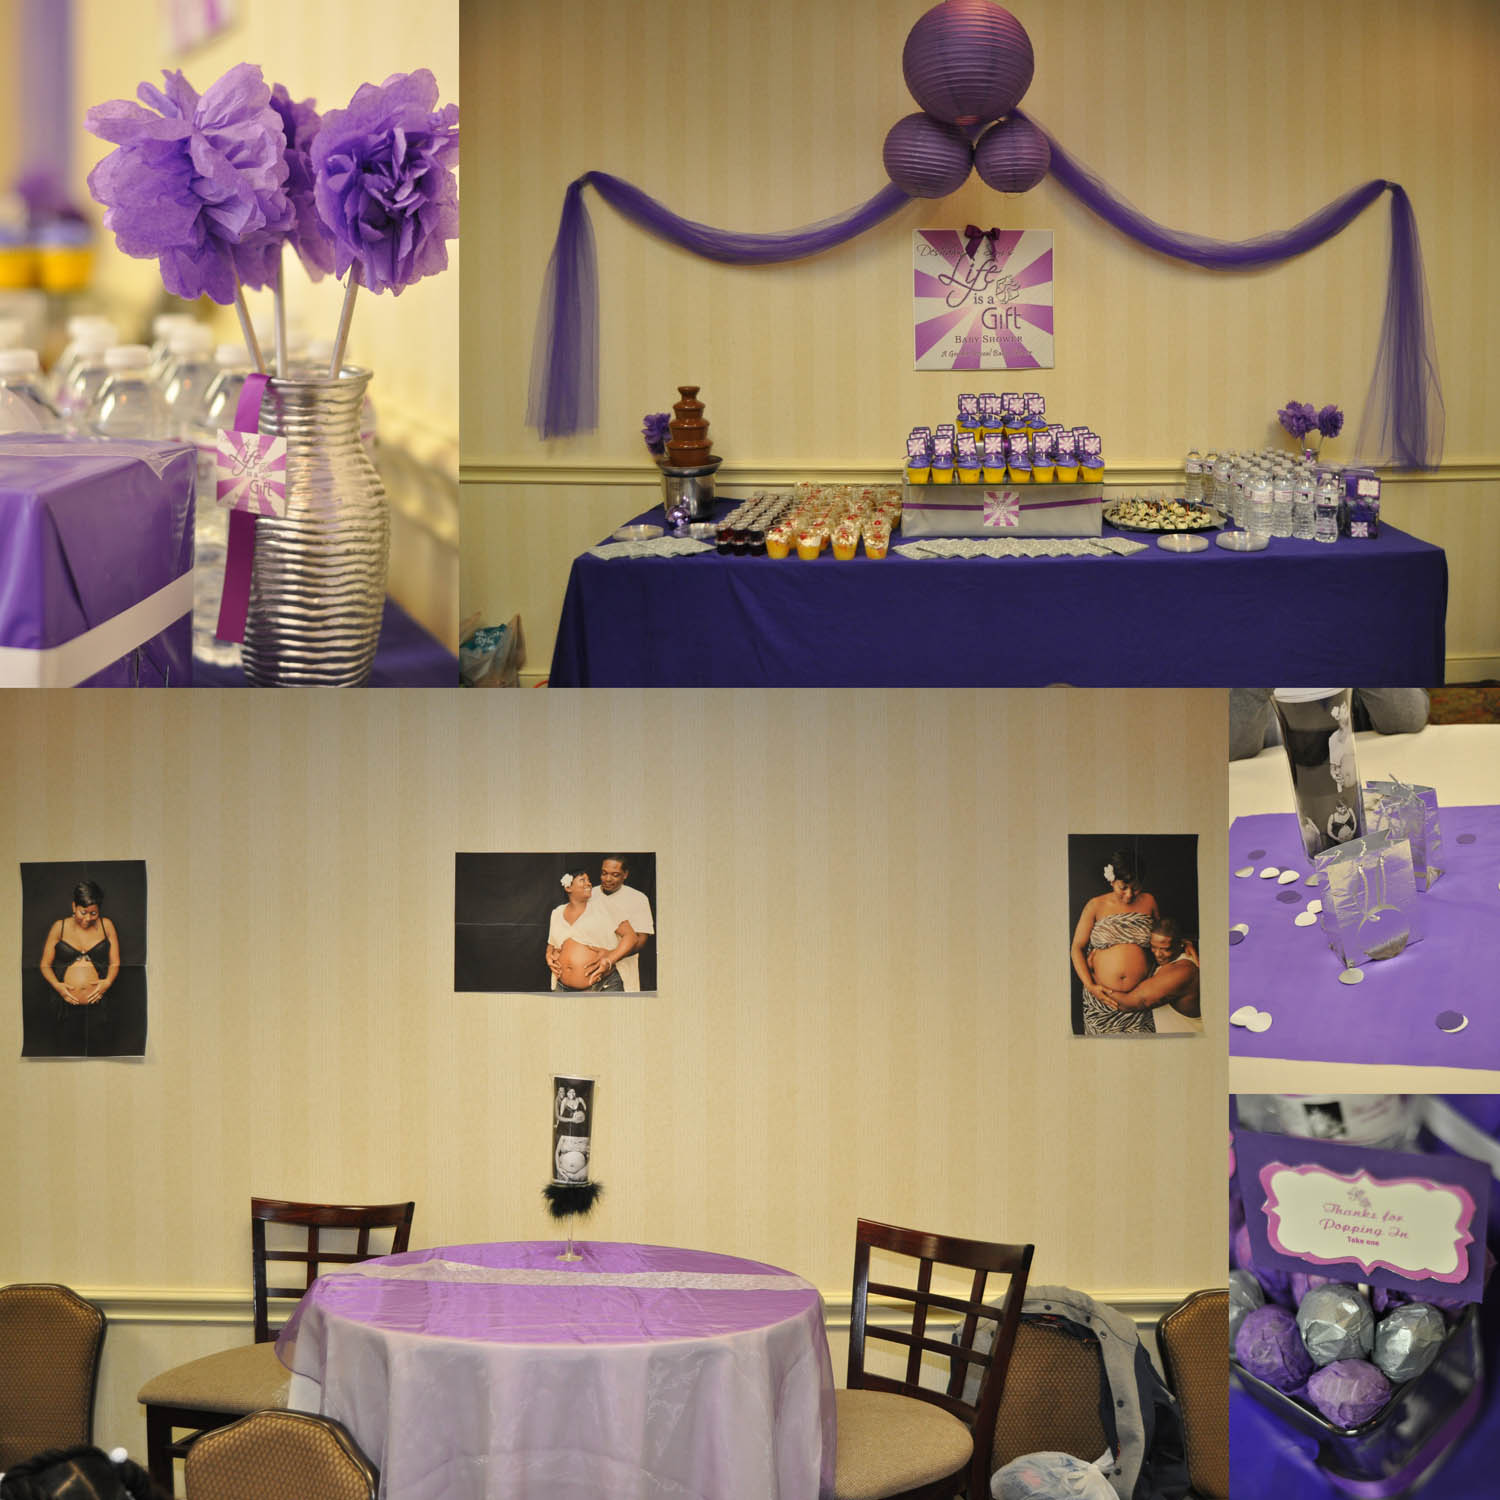 Life is a Gift - Purple Baby Shower